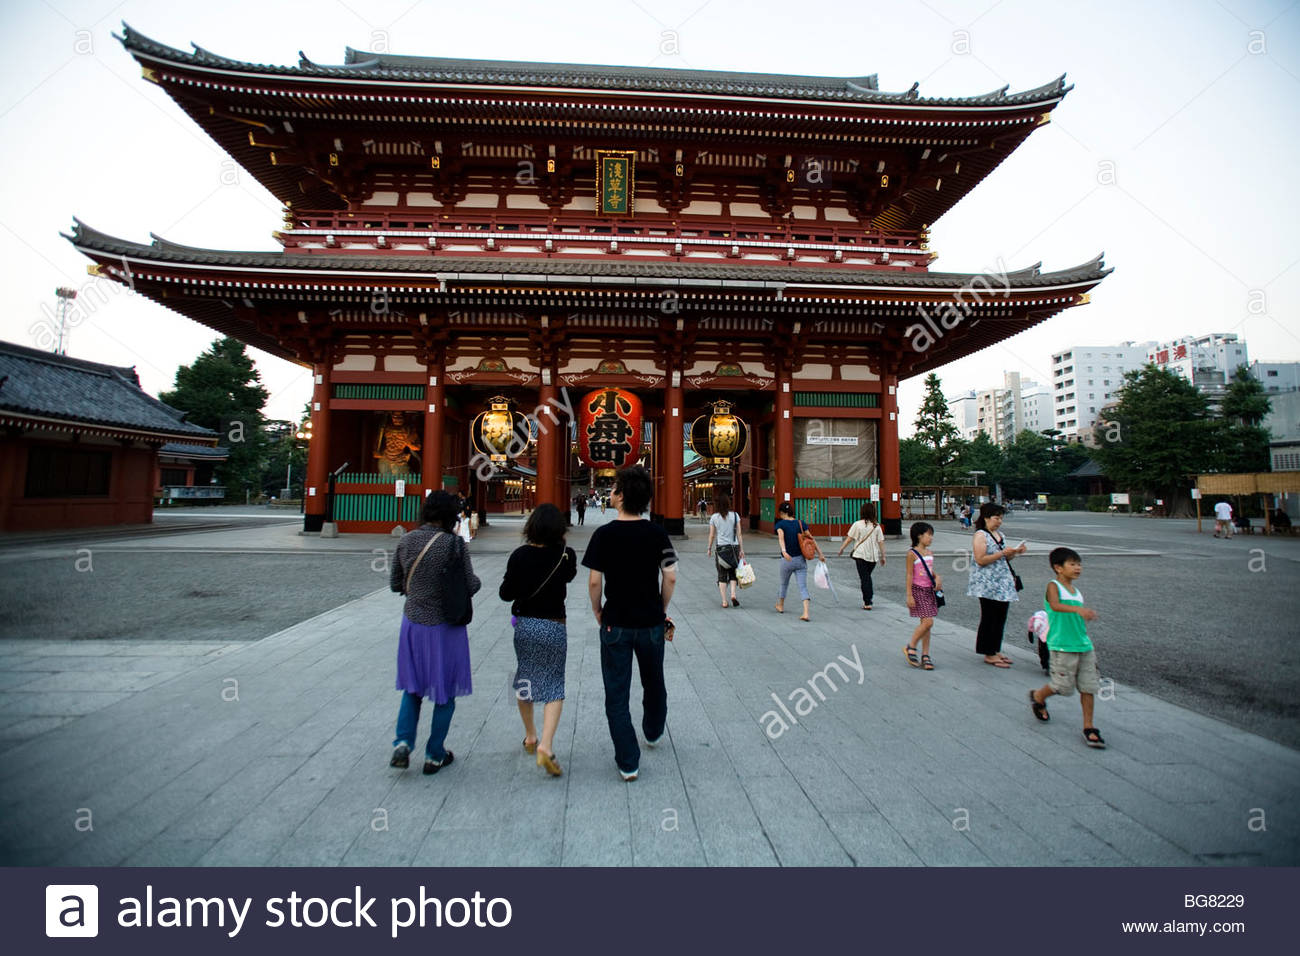 Several families walk toward a traditional temple in Tokyo, Japan. - Stock Image